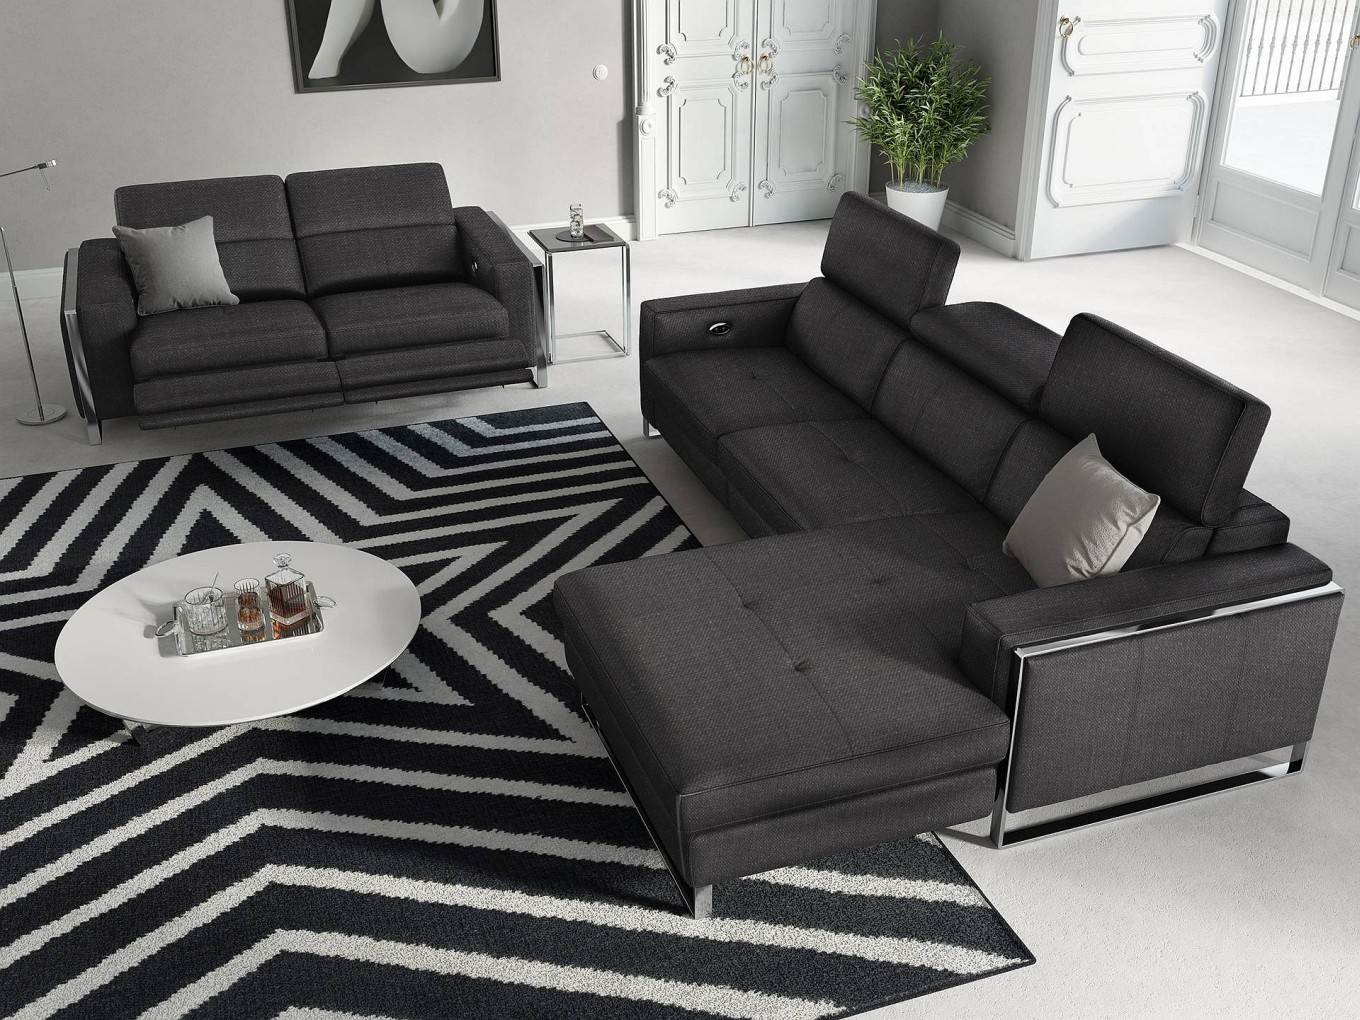 Couchgarnitur Mit Relaxfunktion Stoff Sofa Garnitur Relax Funktion Couchgarnitur